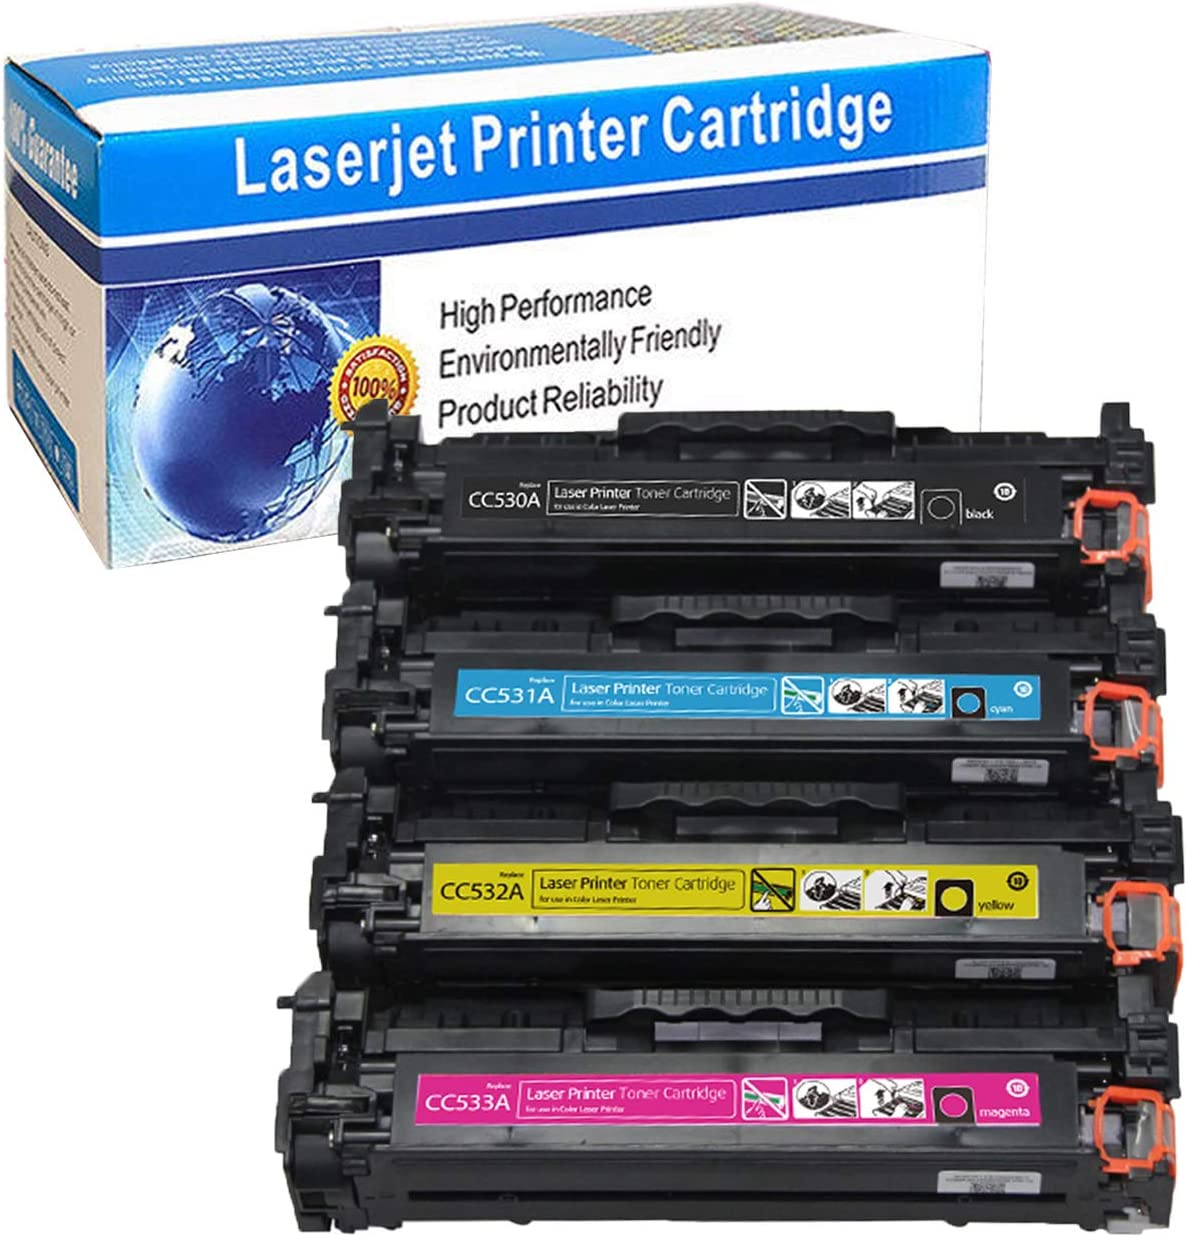 Black Cyan Yellow Magenta, 4 Pack M-online Compatible Toner Cartridge Replacement for HP 304A CC530A CC531A CC532A CC533A Used on Color Laserjet CP2025 CP2025dn CM2320 CM2320n CM2320nf CM2320fxi